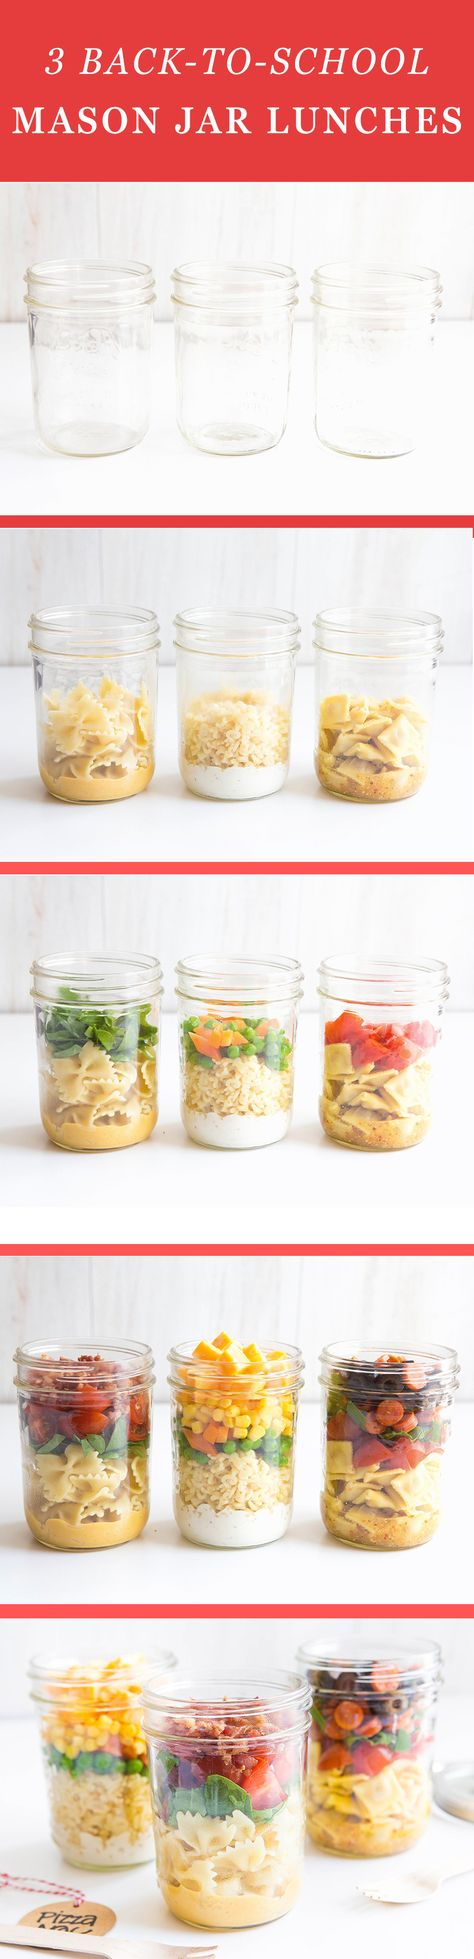 We're obsessed with these mason jar lunches! Try out one of these pasta salad recipes — they're so easy to make at home.